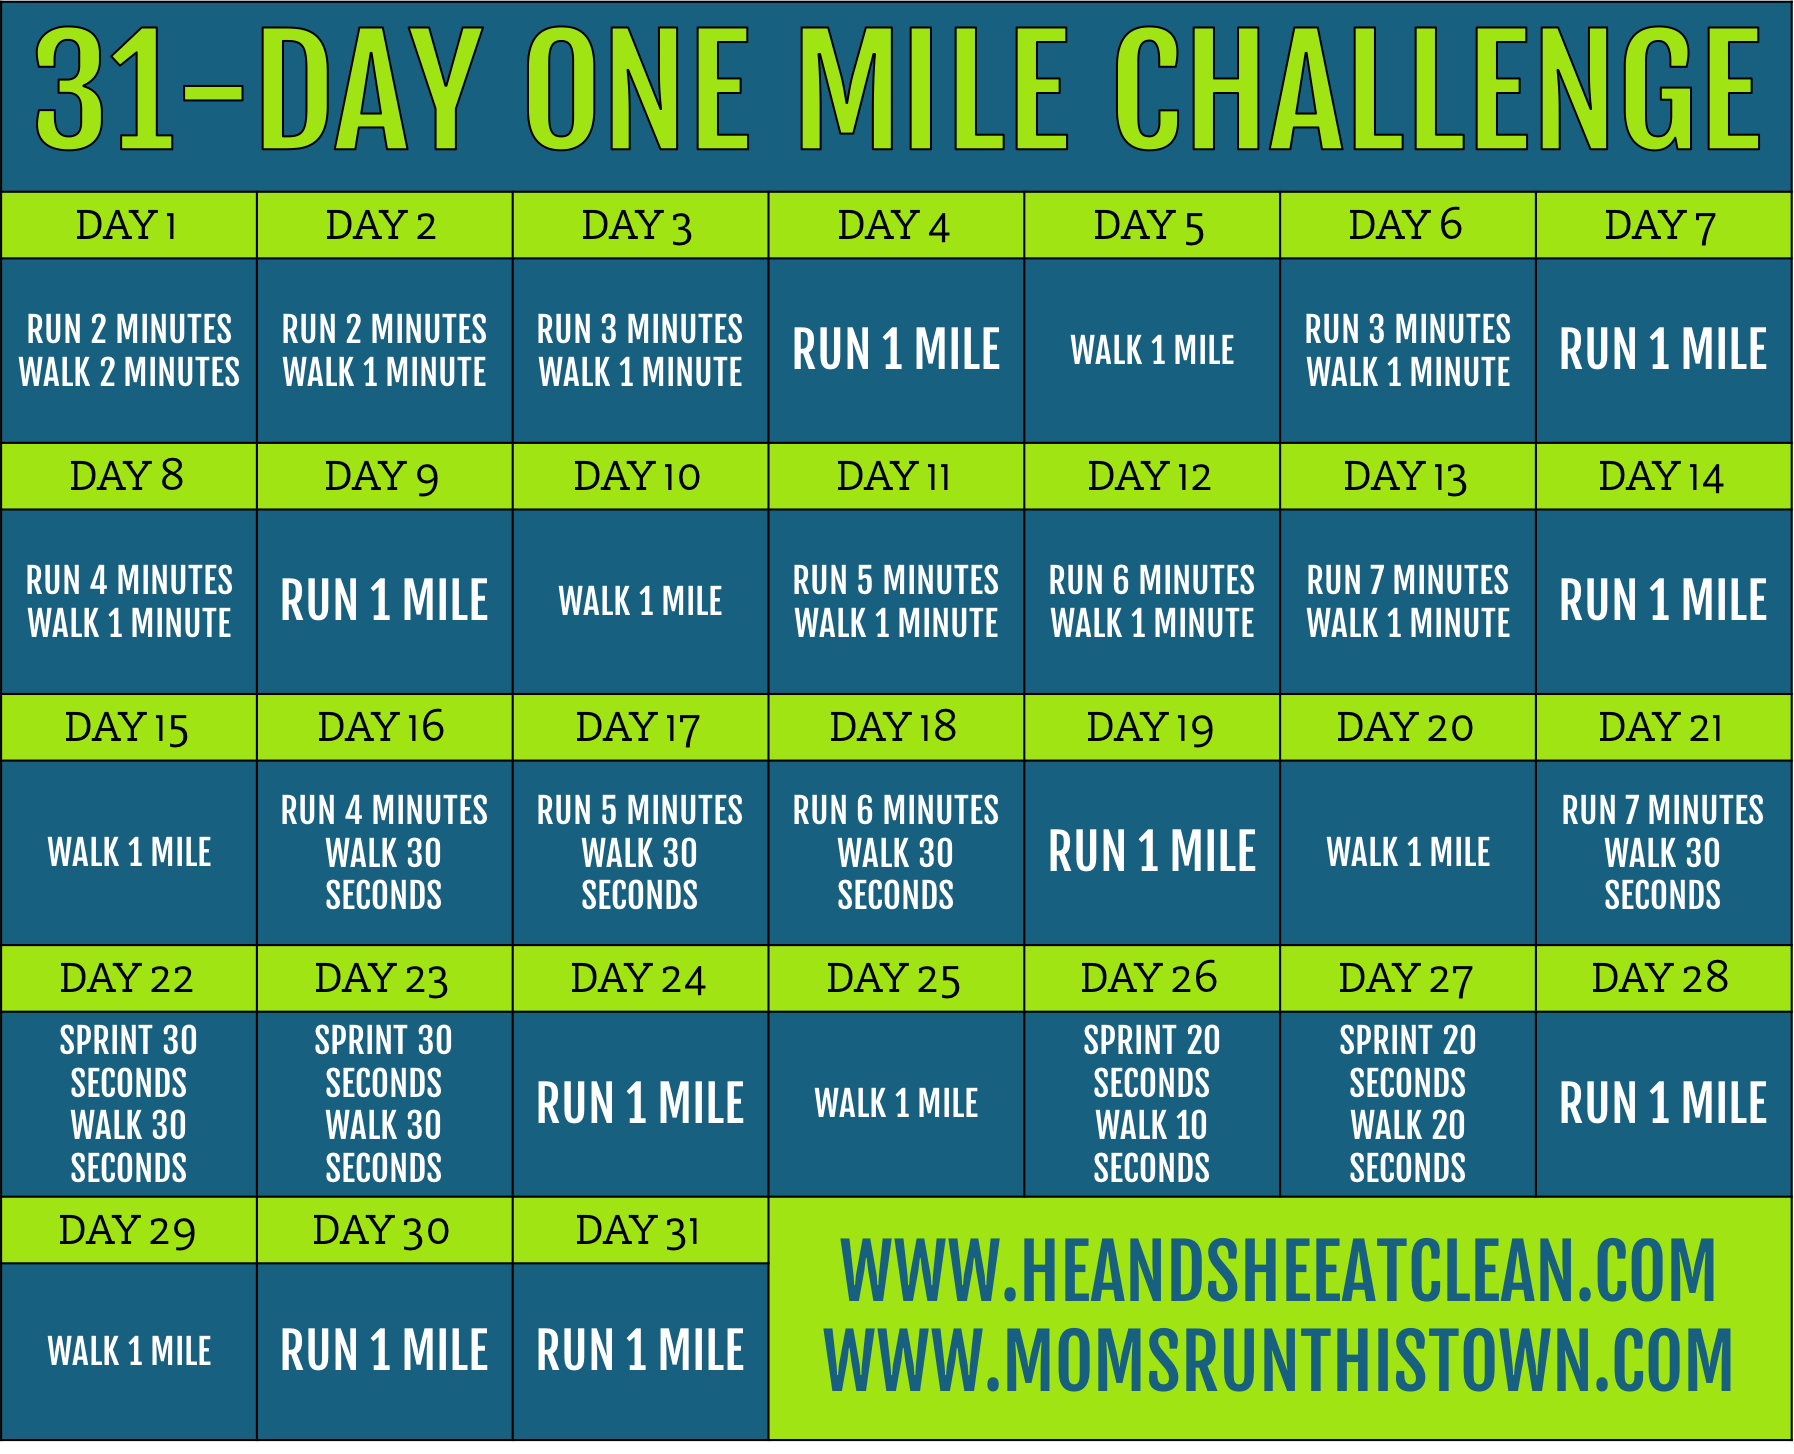 31-Day One Mile Challenge